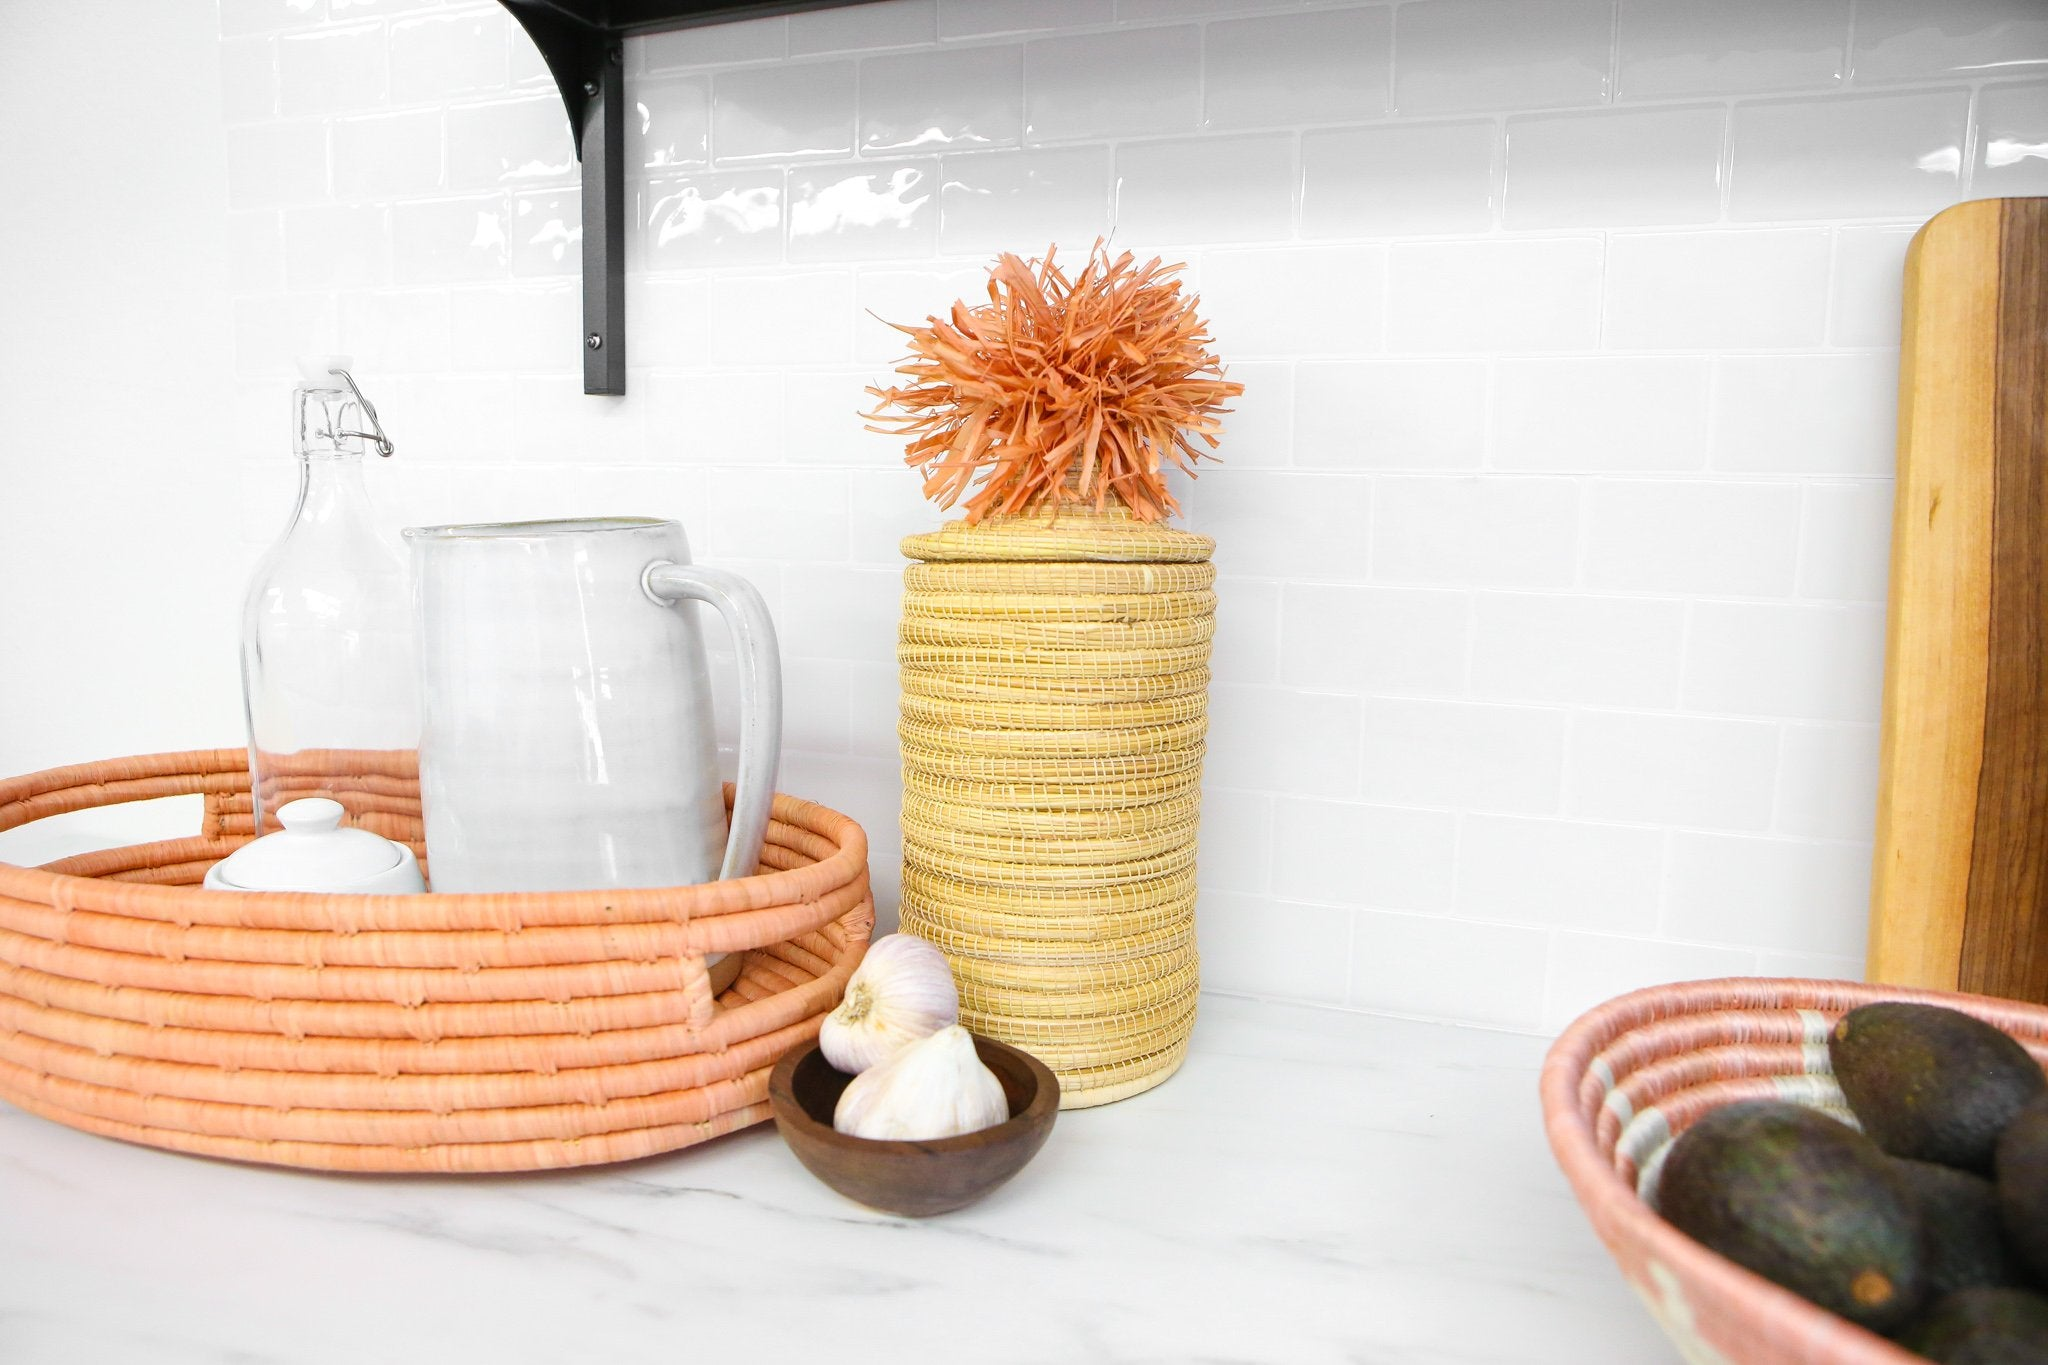 Peach Raffia Bread Basket With Handles - KAZI - Artisan made high quality home decor and wall art